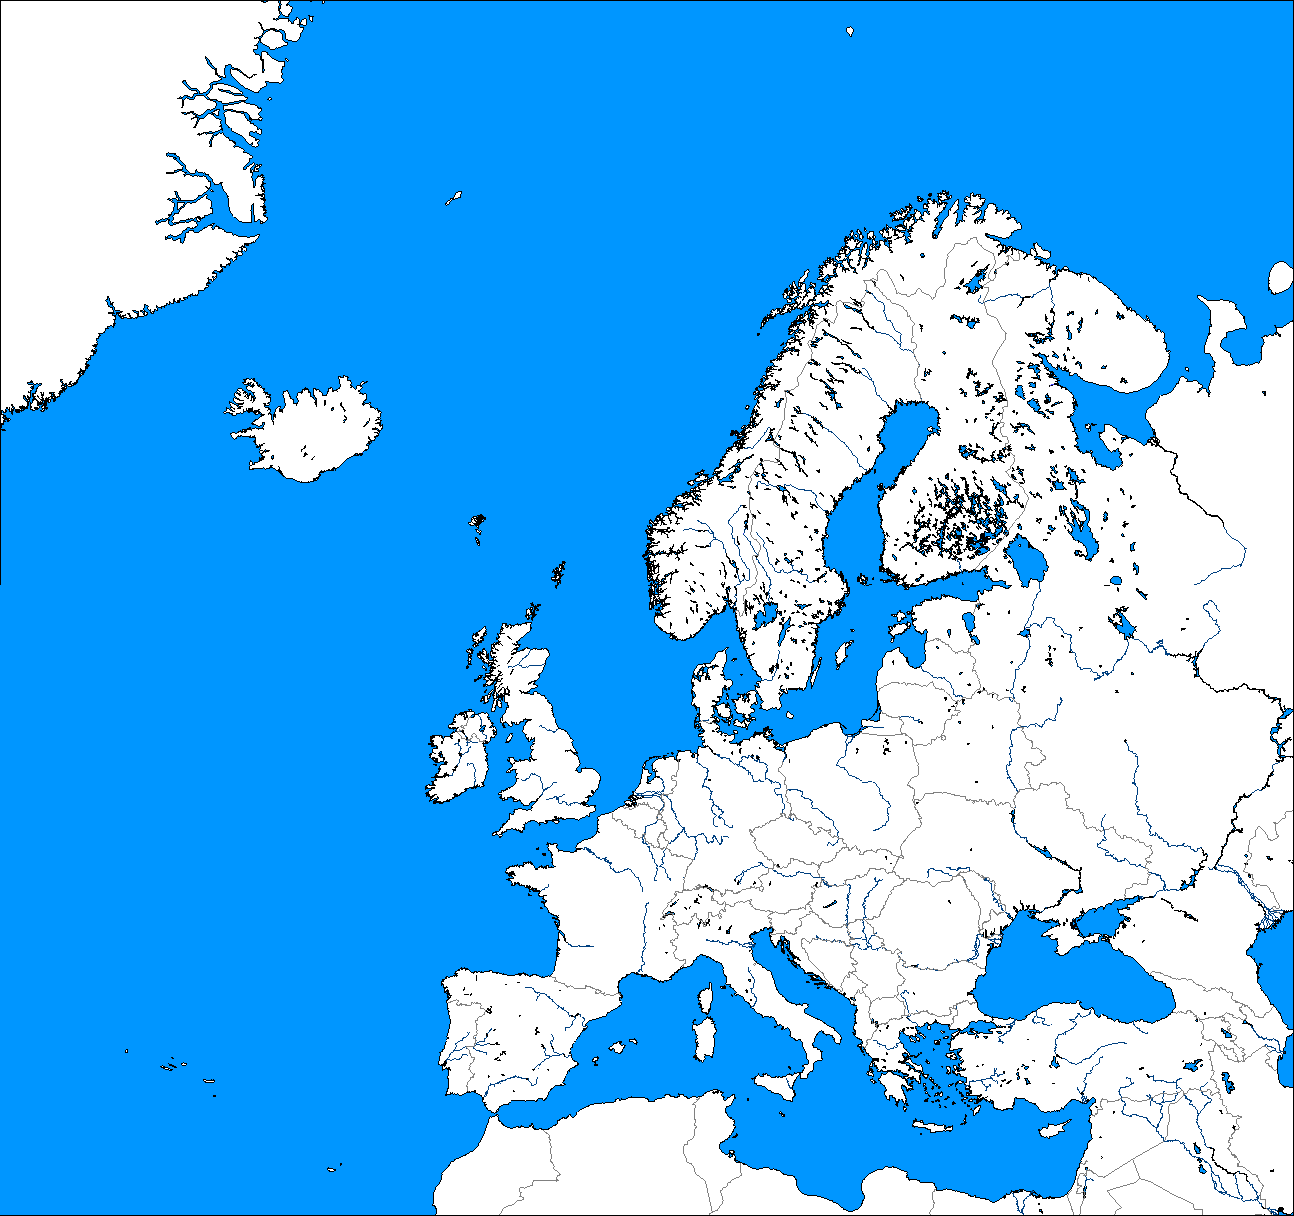 blank_map_directory:all_of_europe [alternatehistory.com wiki]